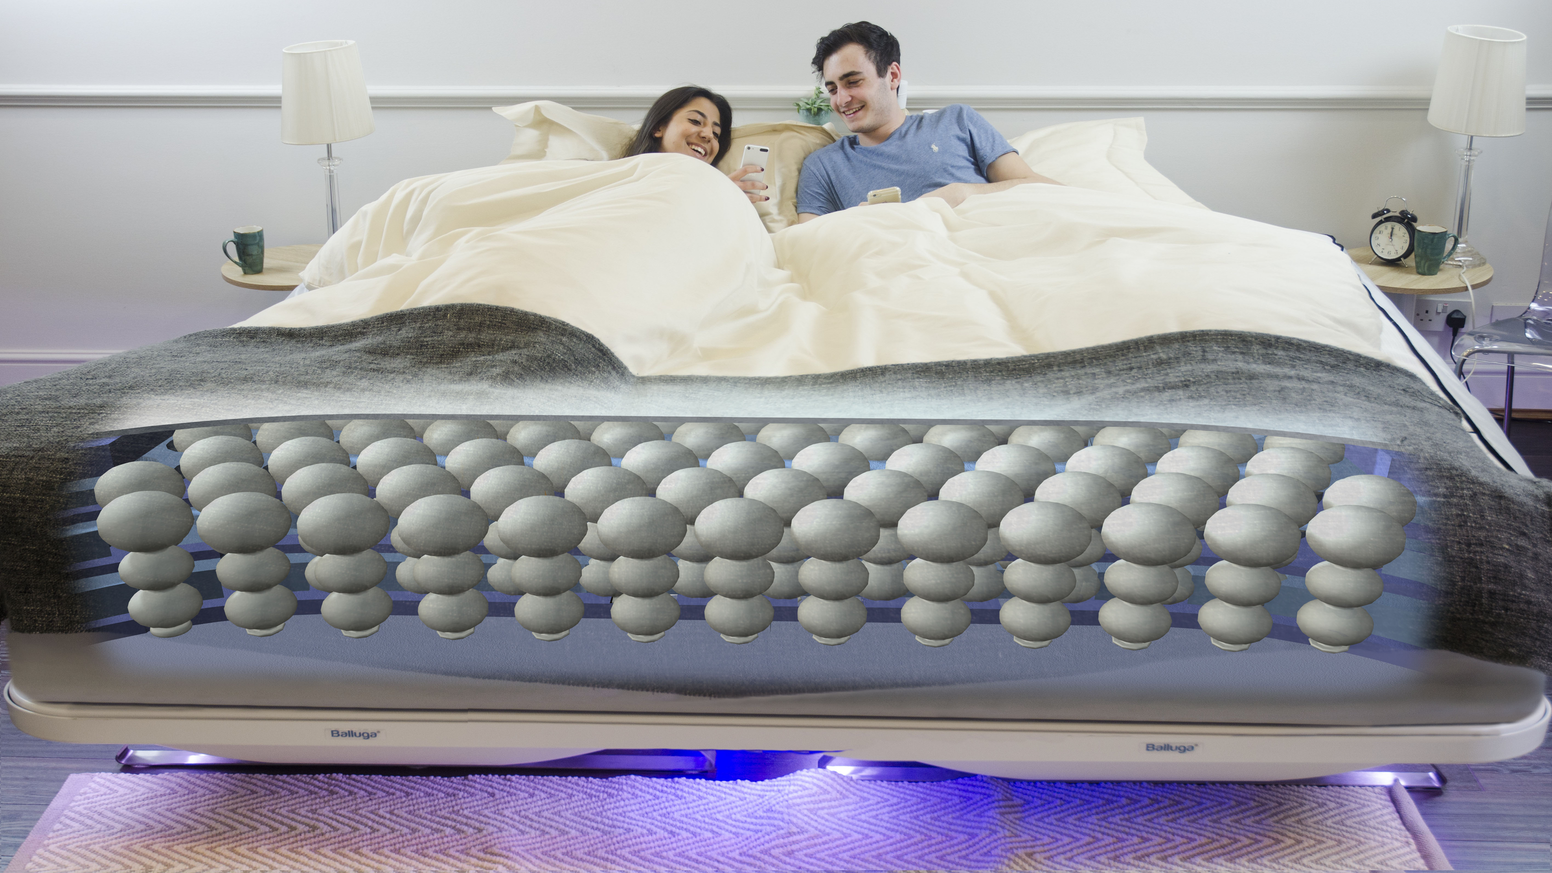 Never have a bad night's sleep again - Balluga sets your ideal temperature, gives you the perfect support and even stops you snoring